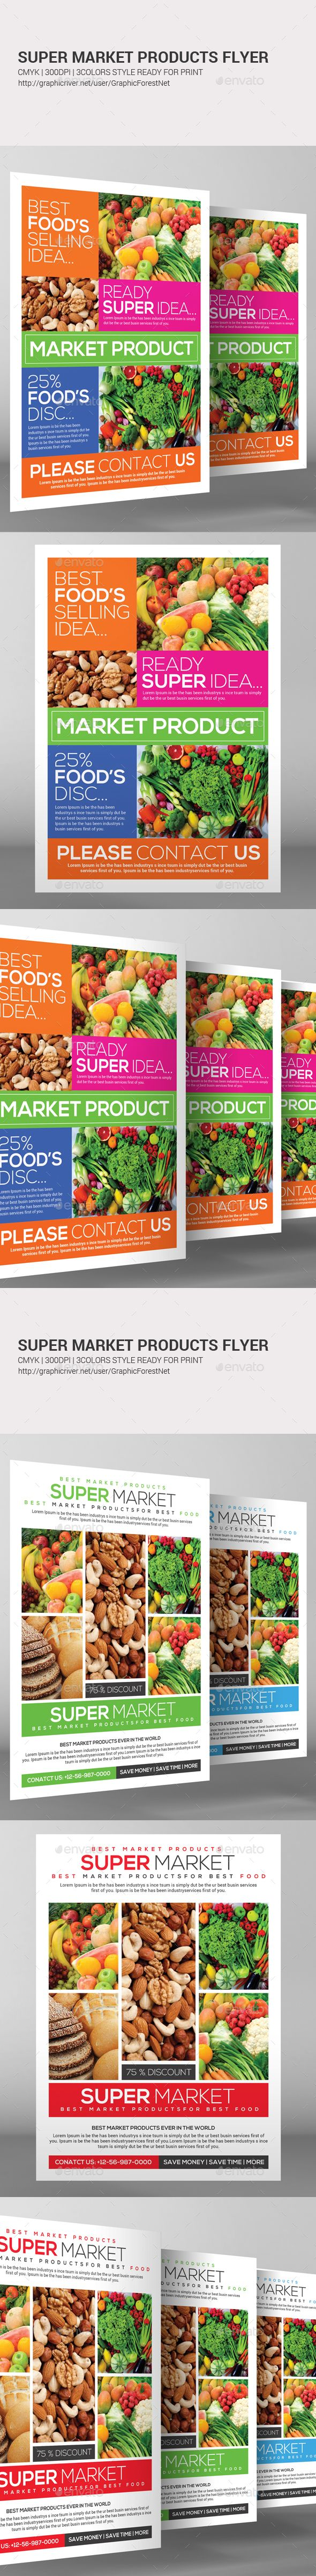 Super Market Products Flyers Template PSD Bundle. Download here: http://graphicriver.net/item/-super-market-products-flyers-bundle/16421434?ref=ksioks